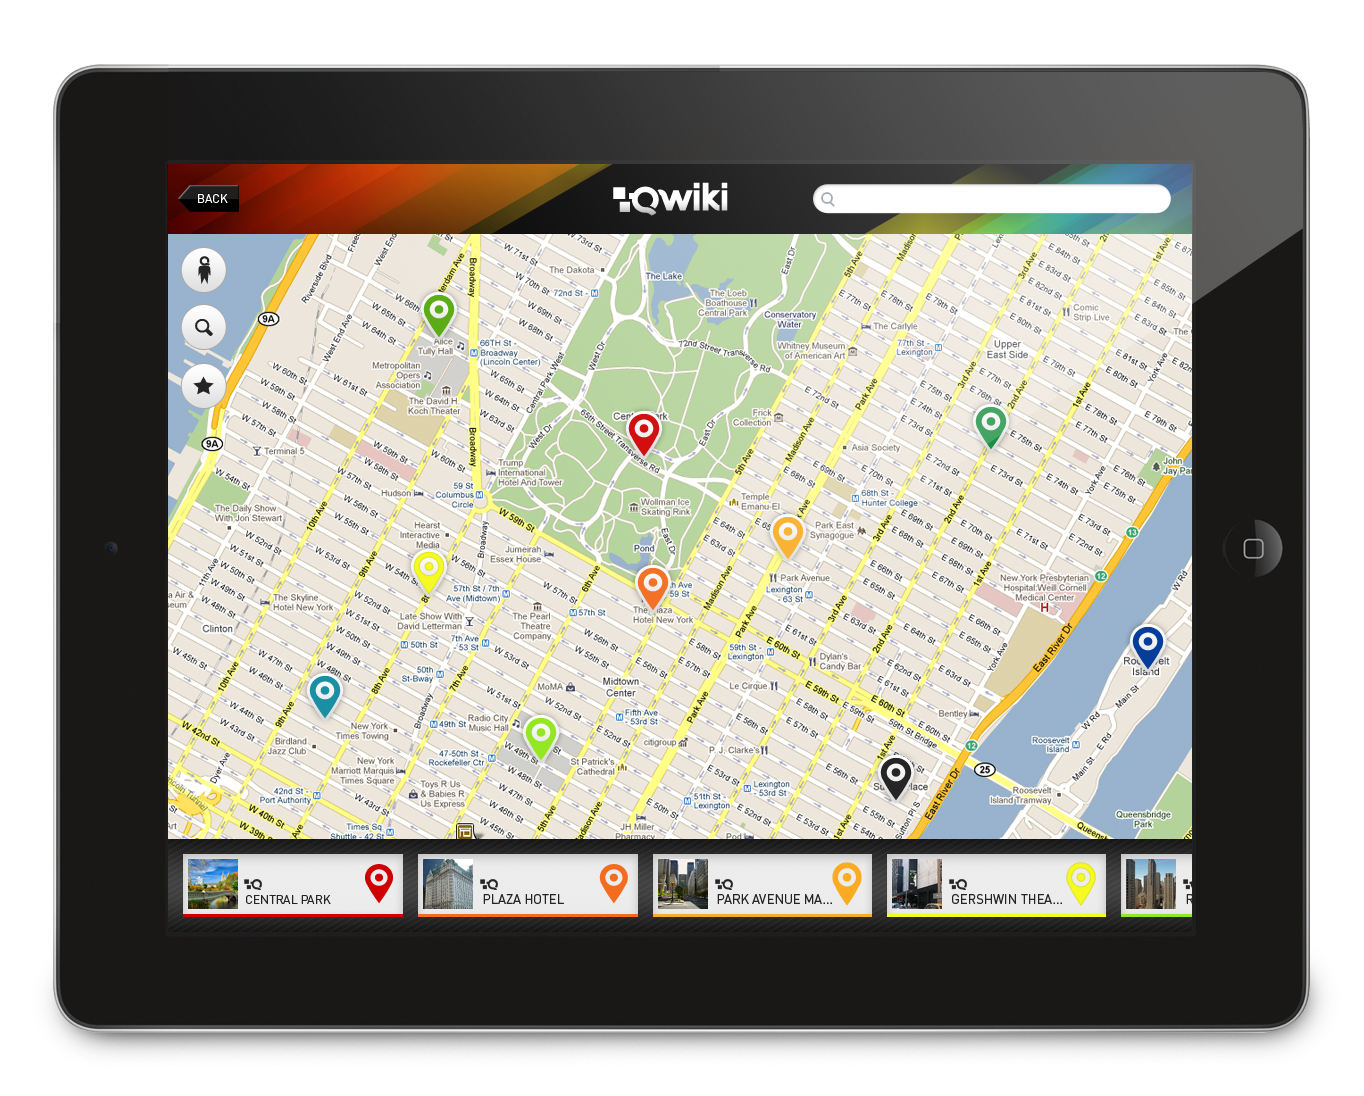 Qwiki for the iPad - Map Browser